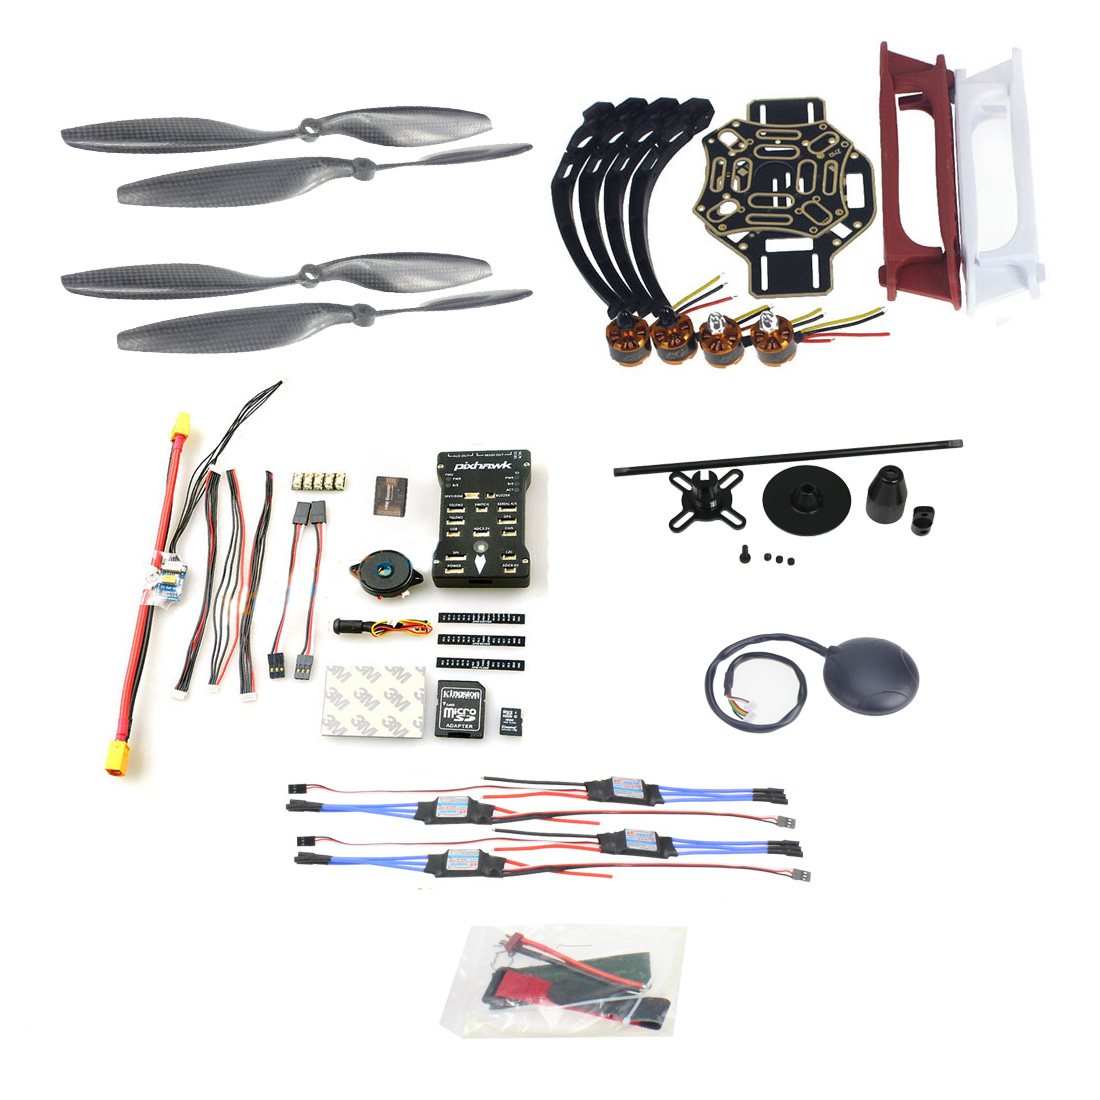 Best Seller JMT DIY FPV Drone Quadcopter 4-axle Aircraft Kit